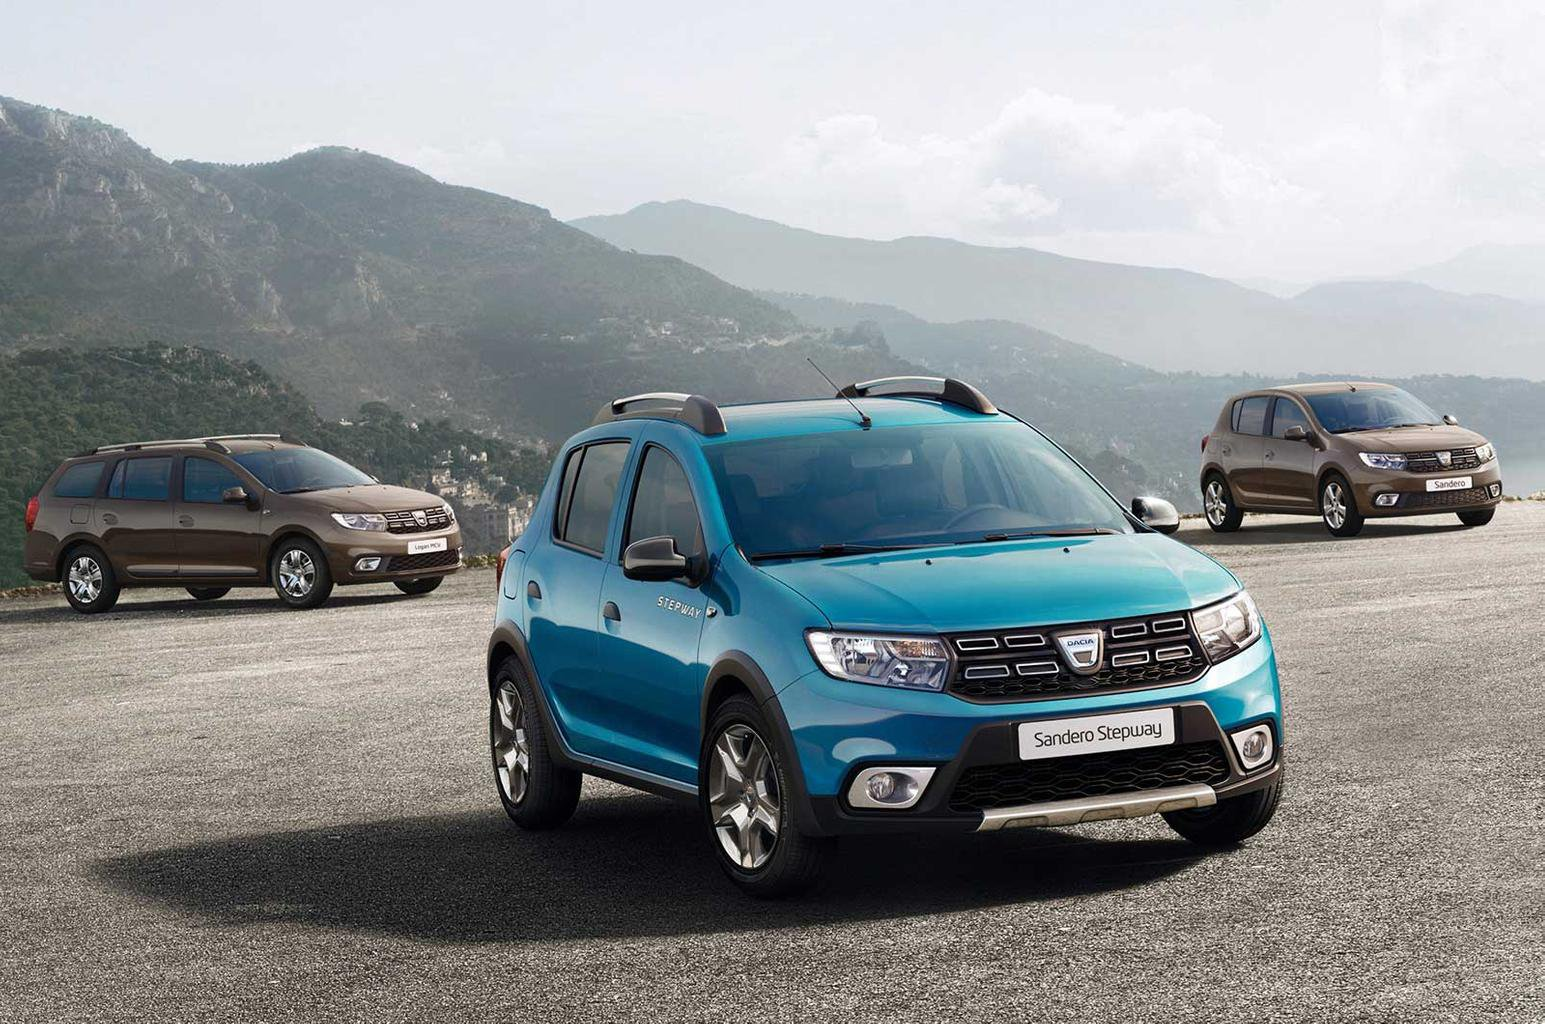 Facelifted Dacia Sandero, Sandero Stepway and Logan MCV prices announced